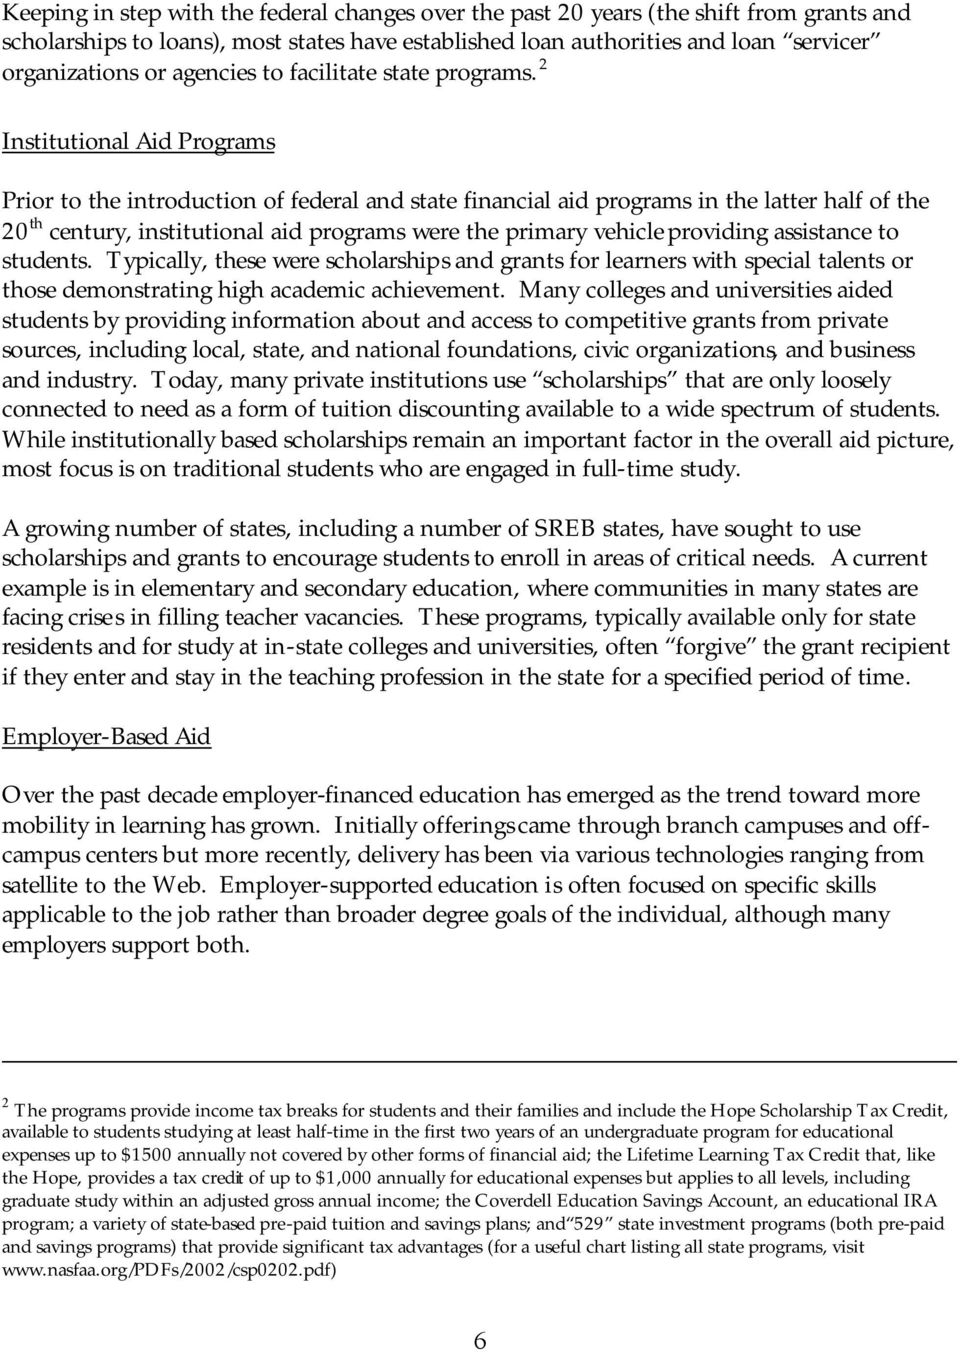 2 Institutional Aid Programs Prior to the introduction of federal and state financial aid programs in the latter half of the 20 th century, institutional aid programs were the primary vehicle